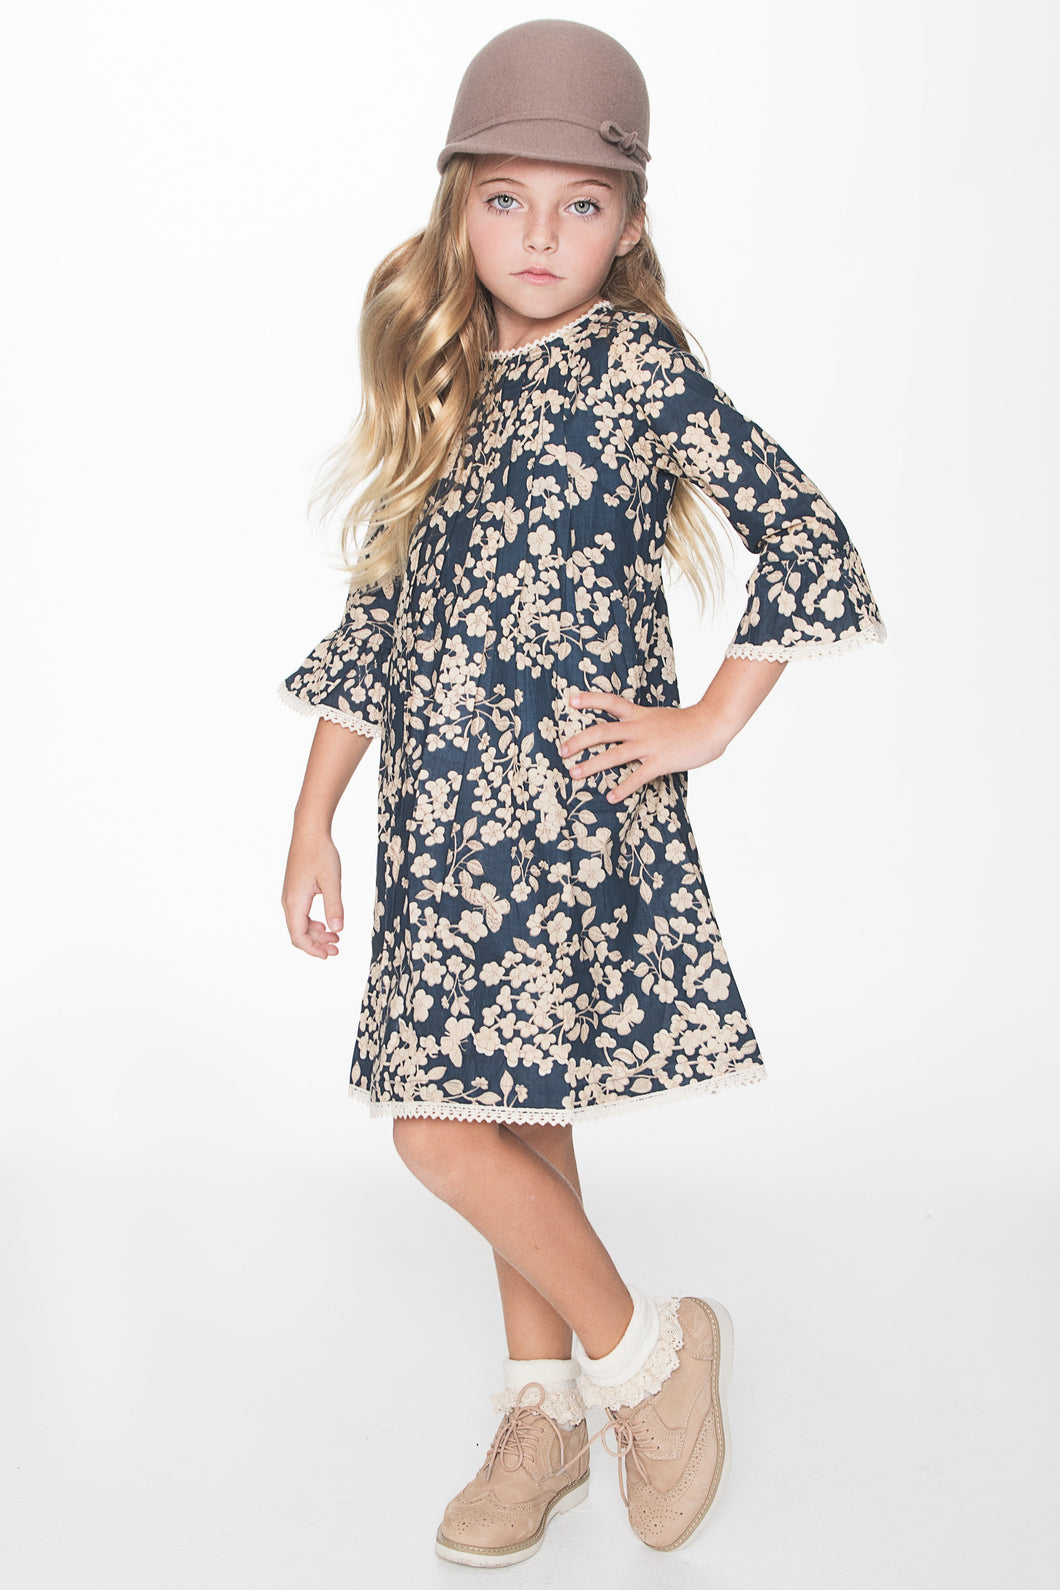 Navy Cherry Blossom Inspired Box Pleat Lace Detail Dress - Kids Clothing, Dress - Girls Dress, Yo Baby Online - Yo Baby